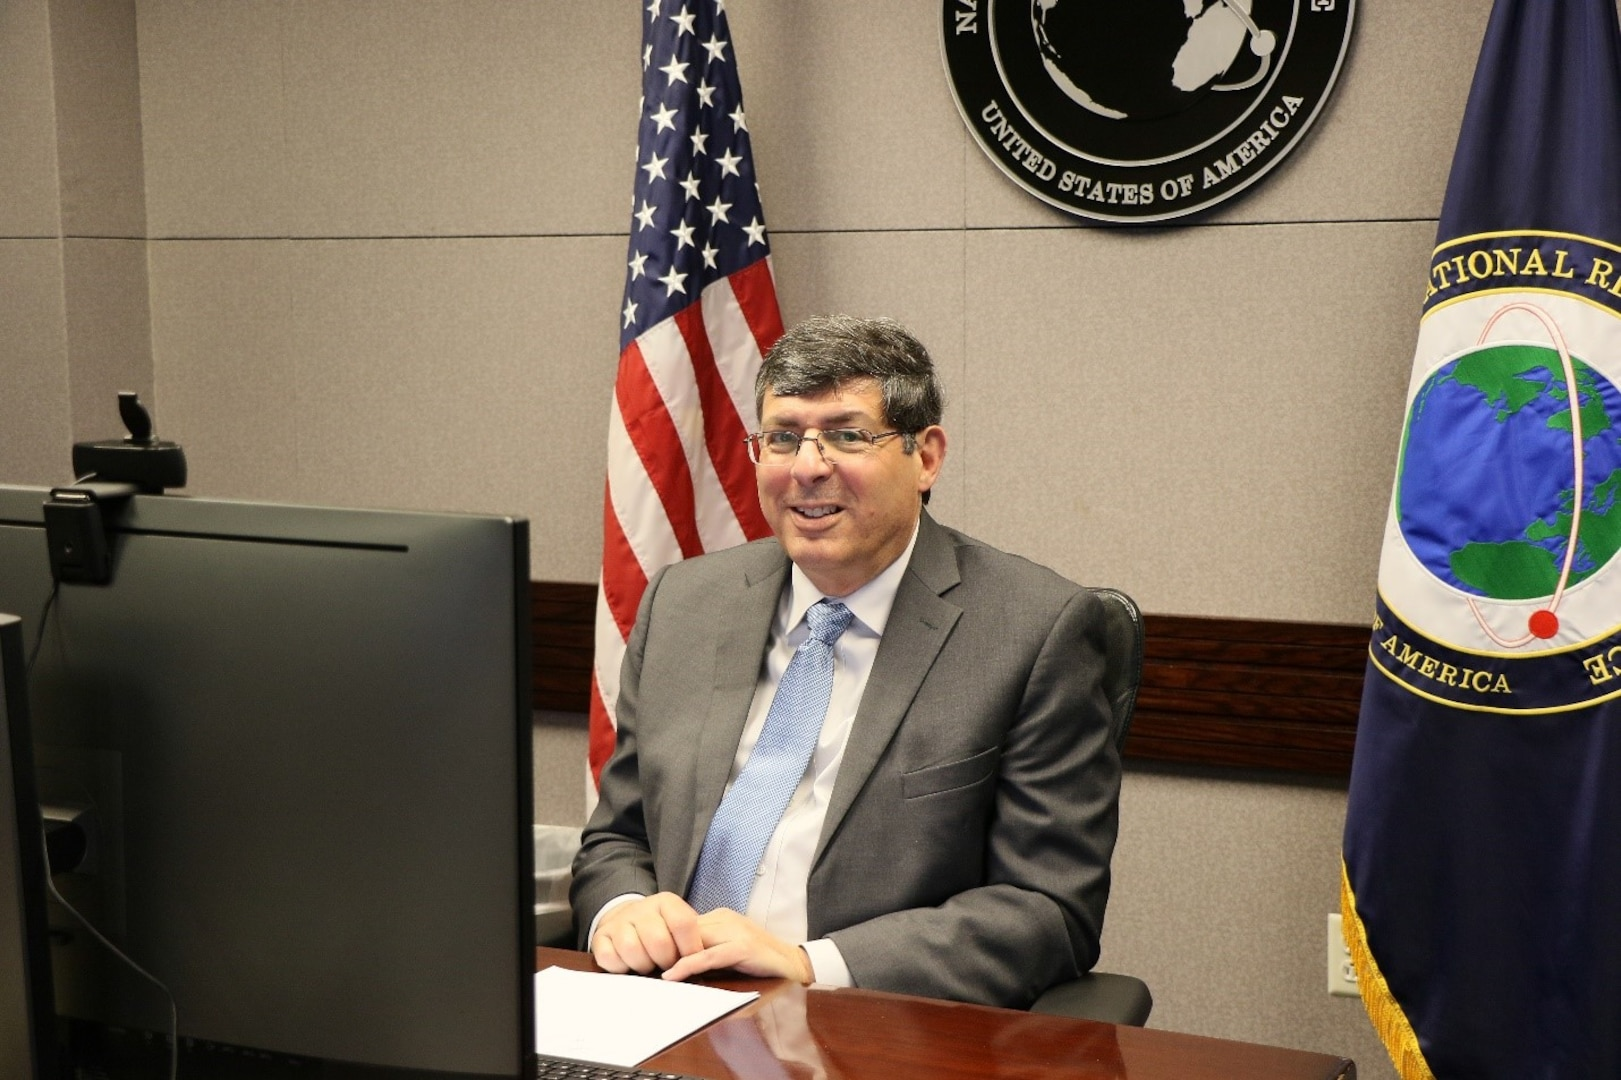 Director Scolese prior to the Washington Space Business Roundtable July 20.